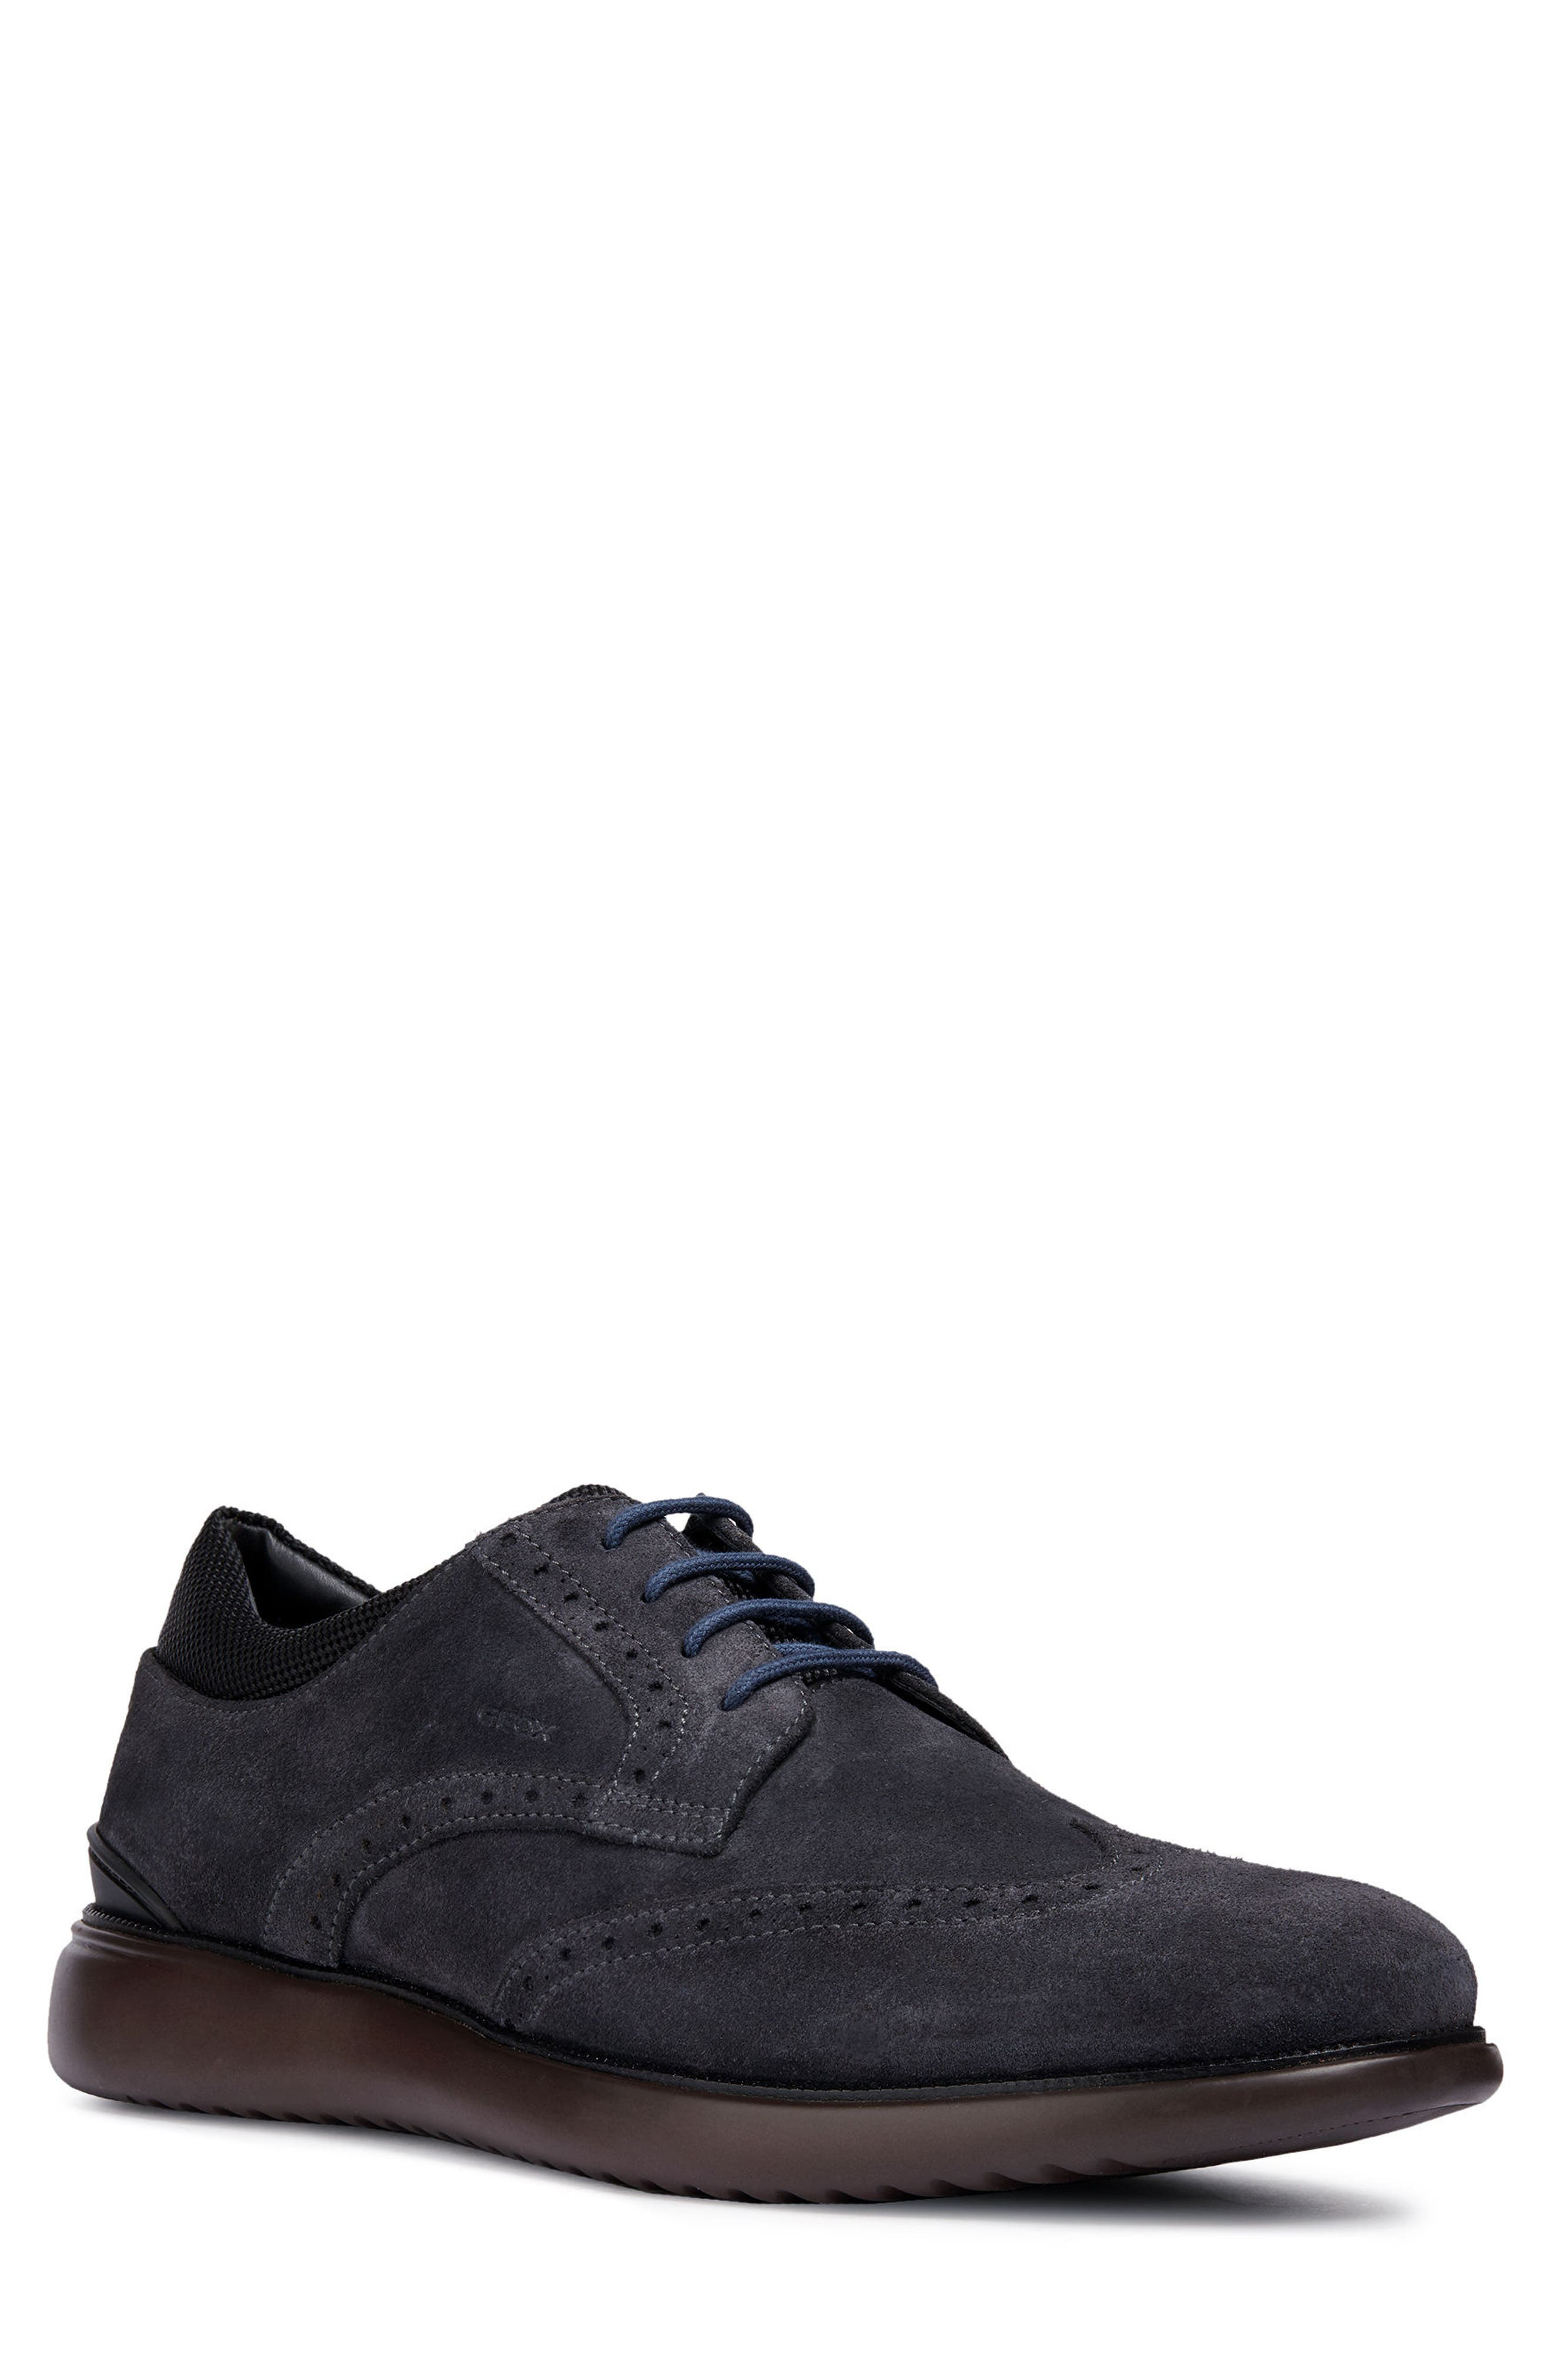 Winfred 6 Wingtip,                             Main thumbnail 1, color,                             DARK JEANS/ BLACK LEATHER